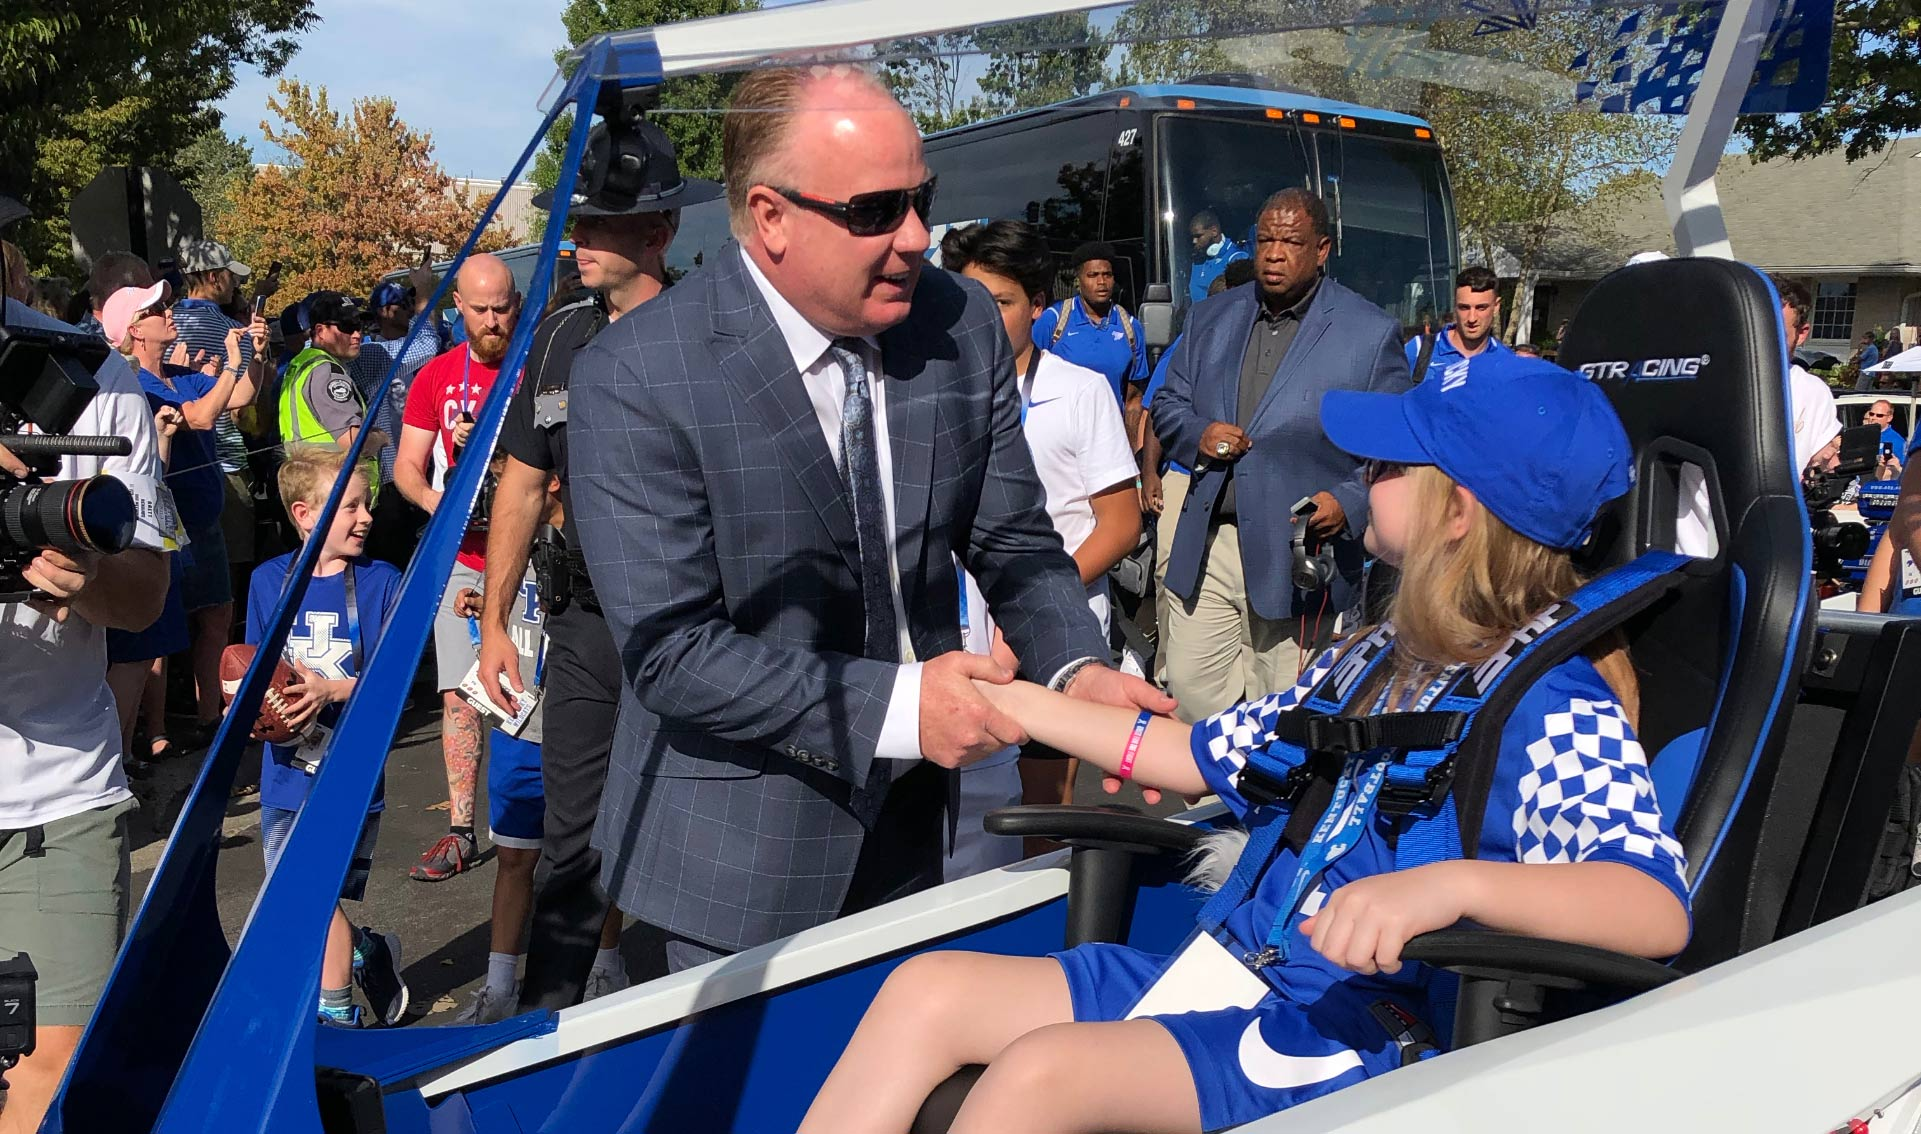 Coach Stoops shakes the hand of Audrey, a young white girl with blonde hair and a blue hat. She is sitting in the cart.